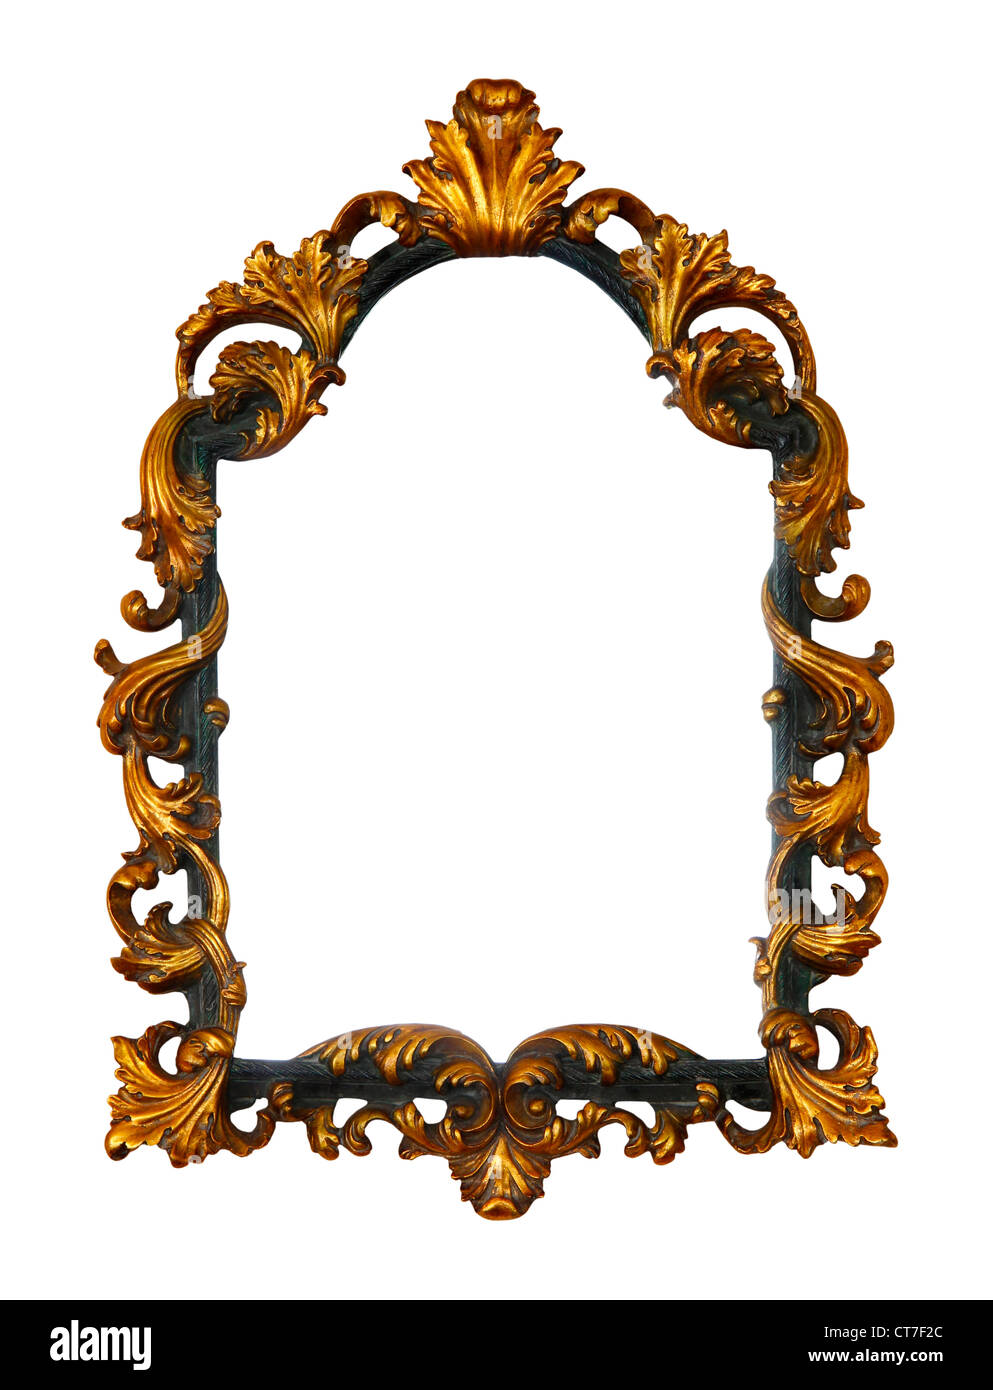 Vintage wooden picture frame isolated on white background - Stock Image